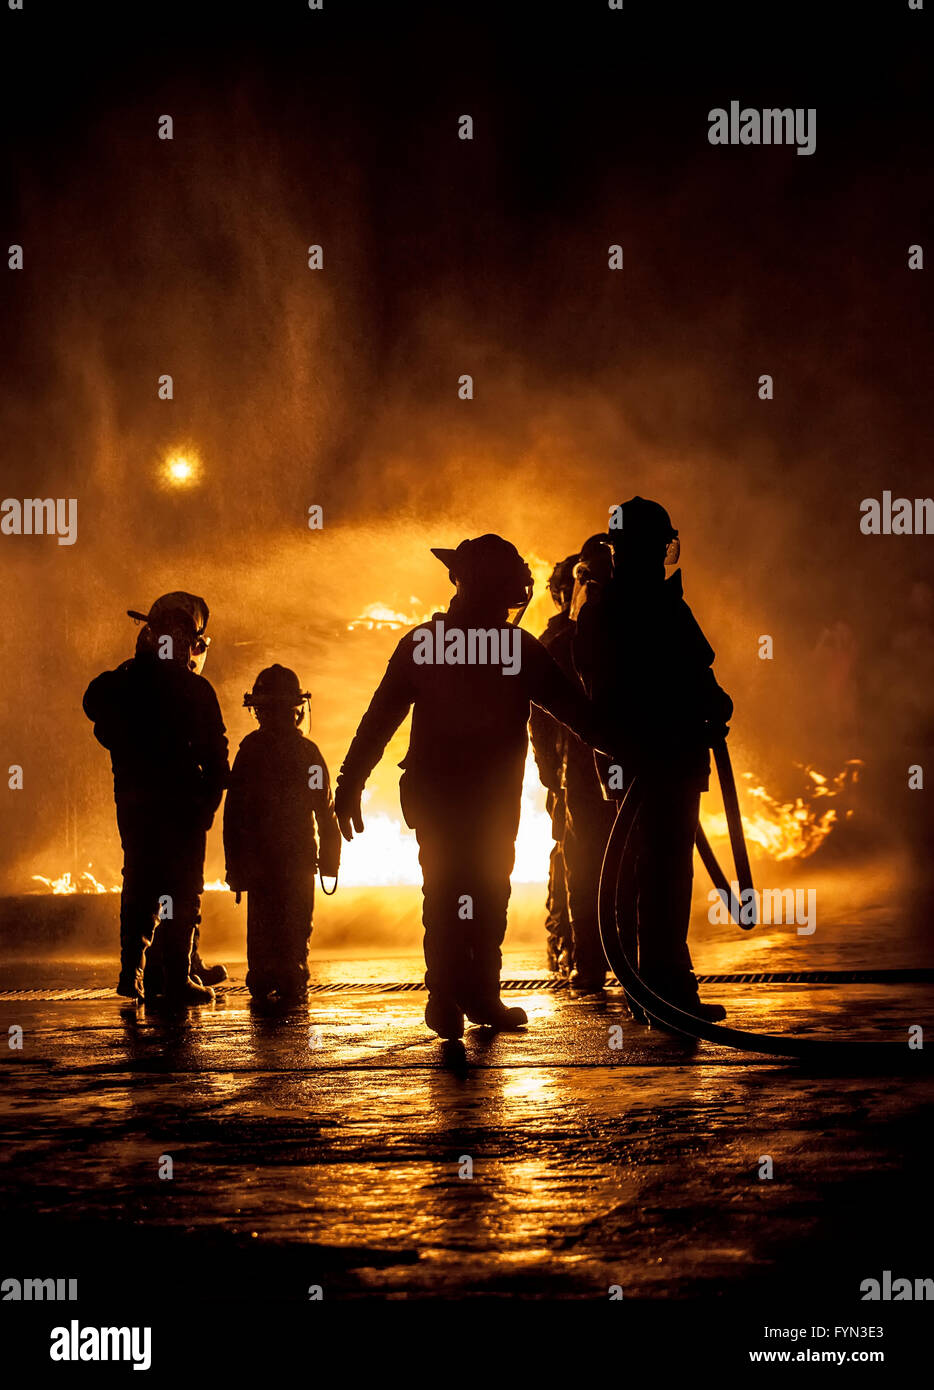 A child watching fire being put out - Stock Image